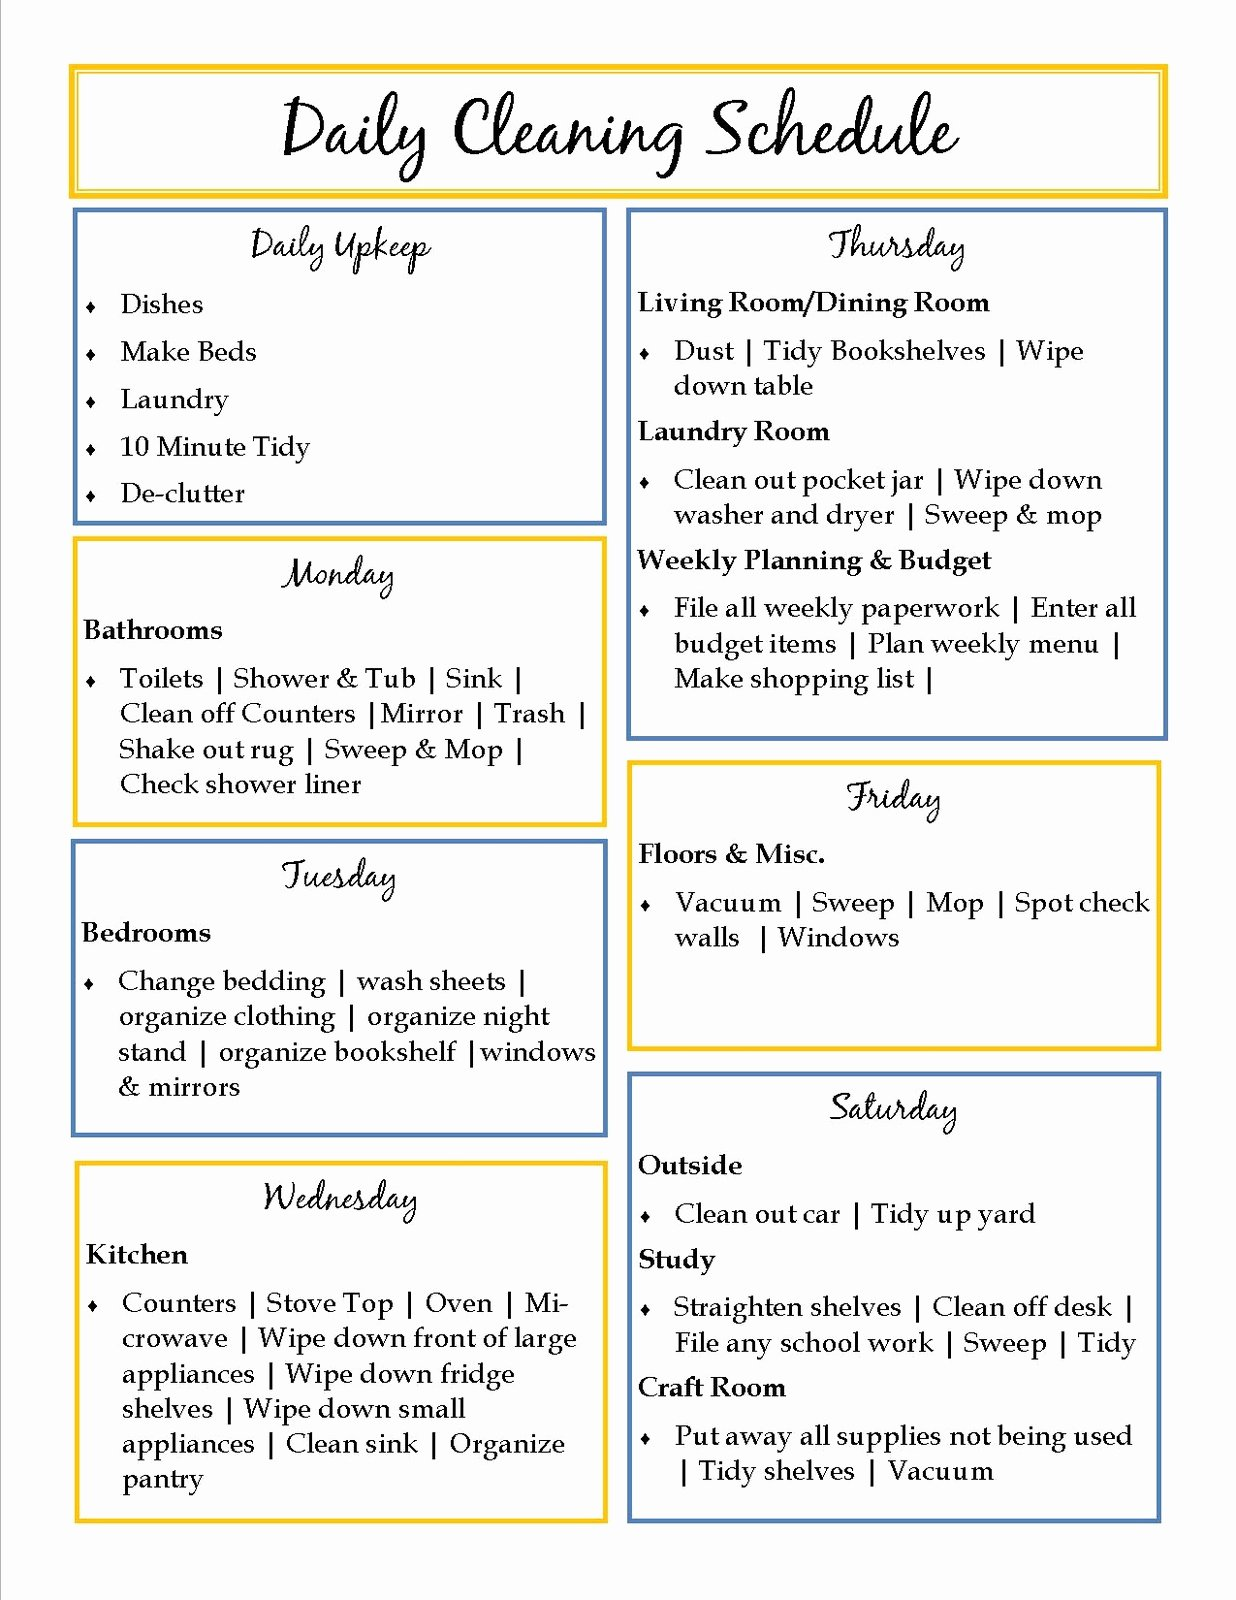 Residential Cleaning Checklist Template Beautiful 40 Helpful House Cleaning Checklists for You